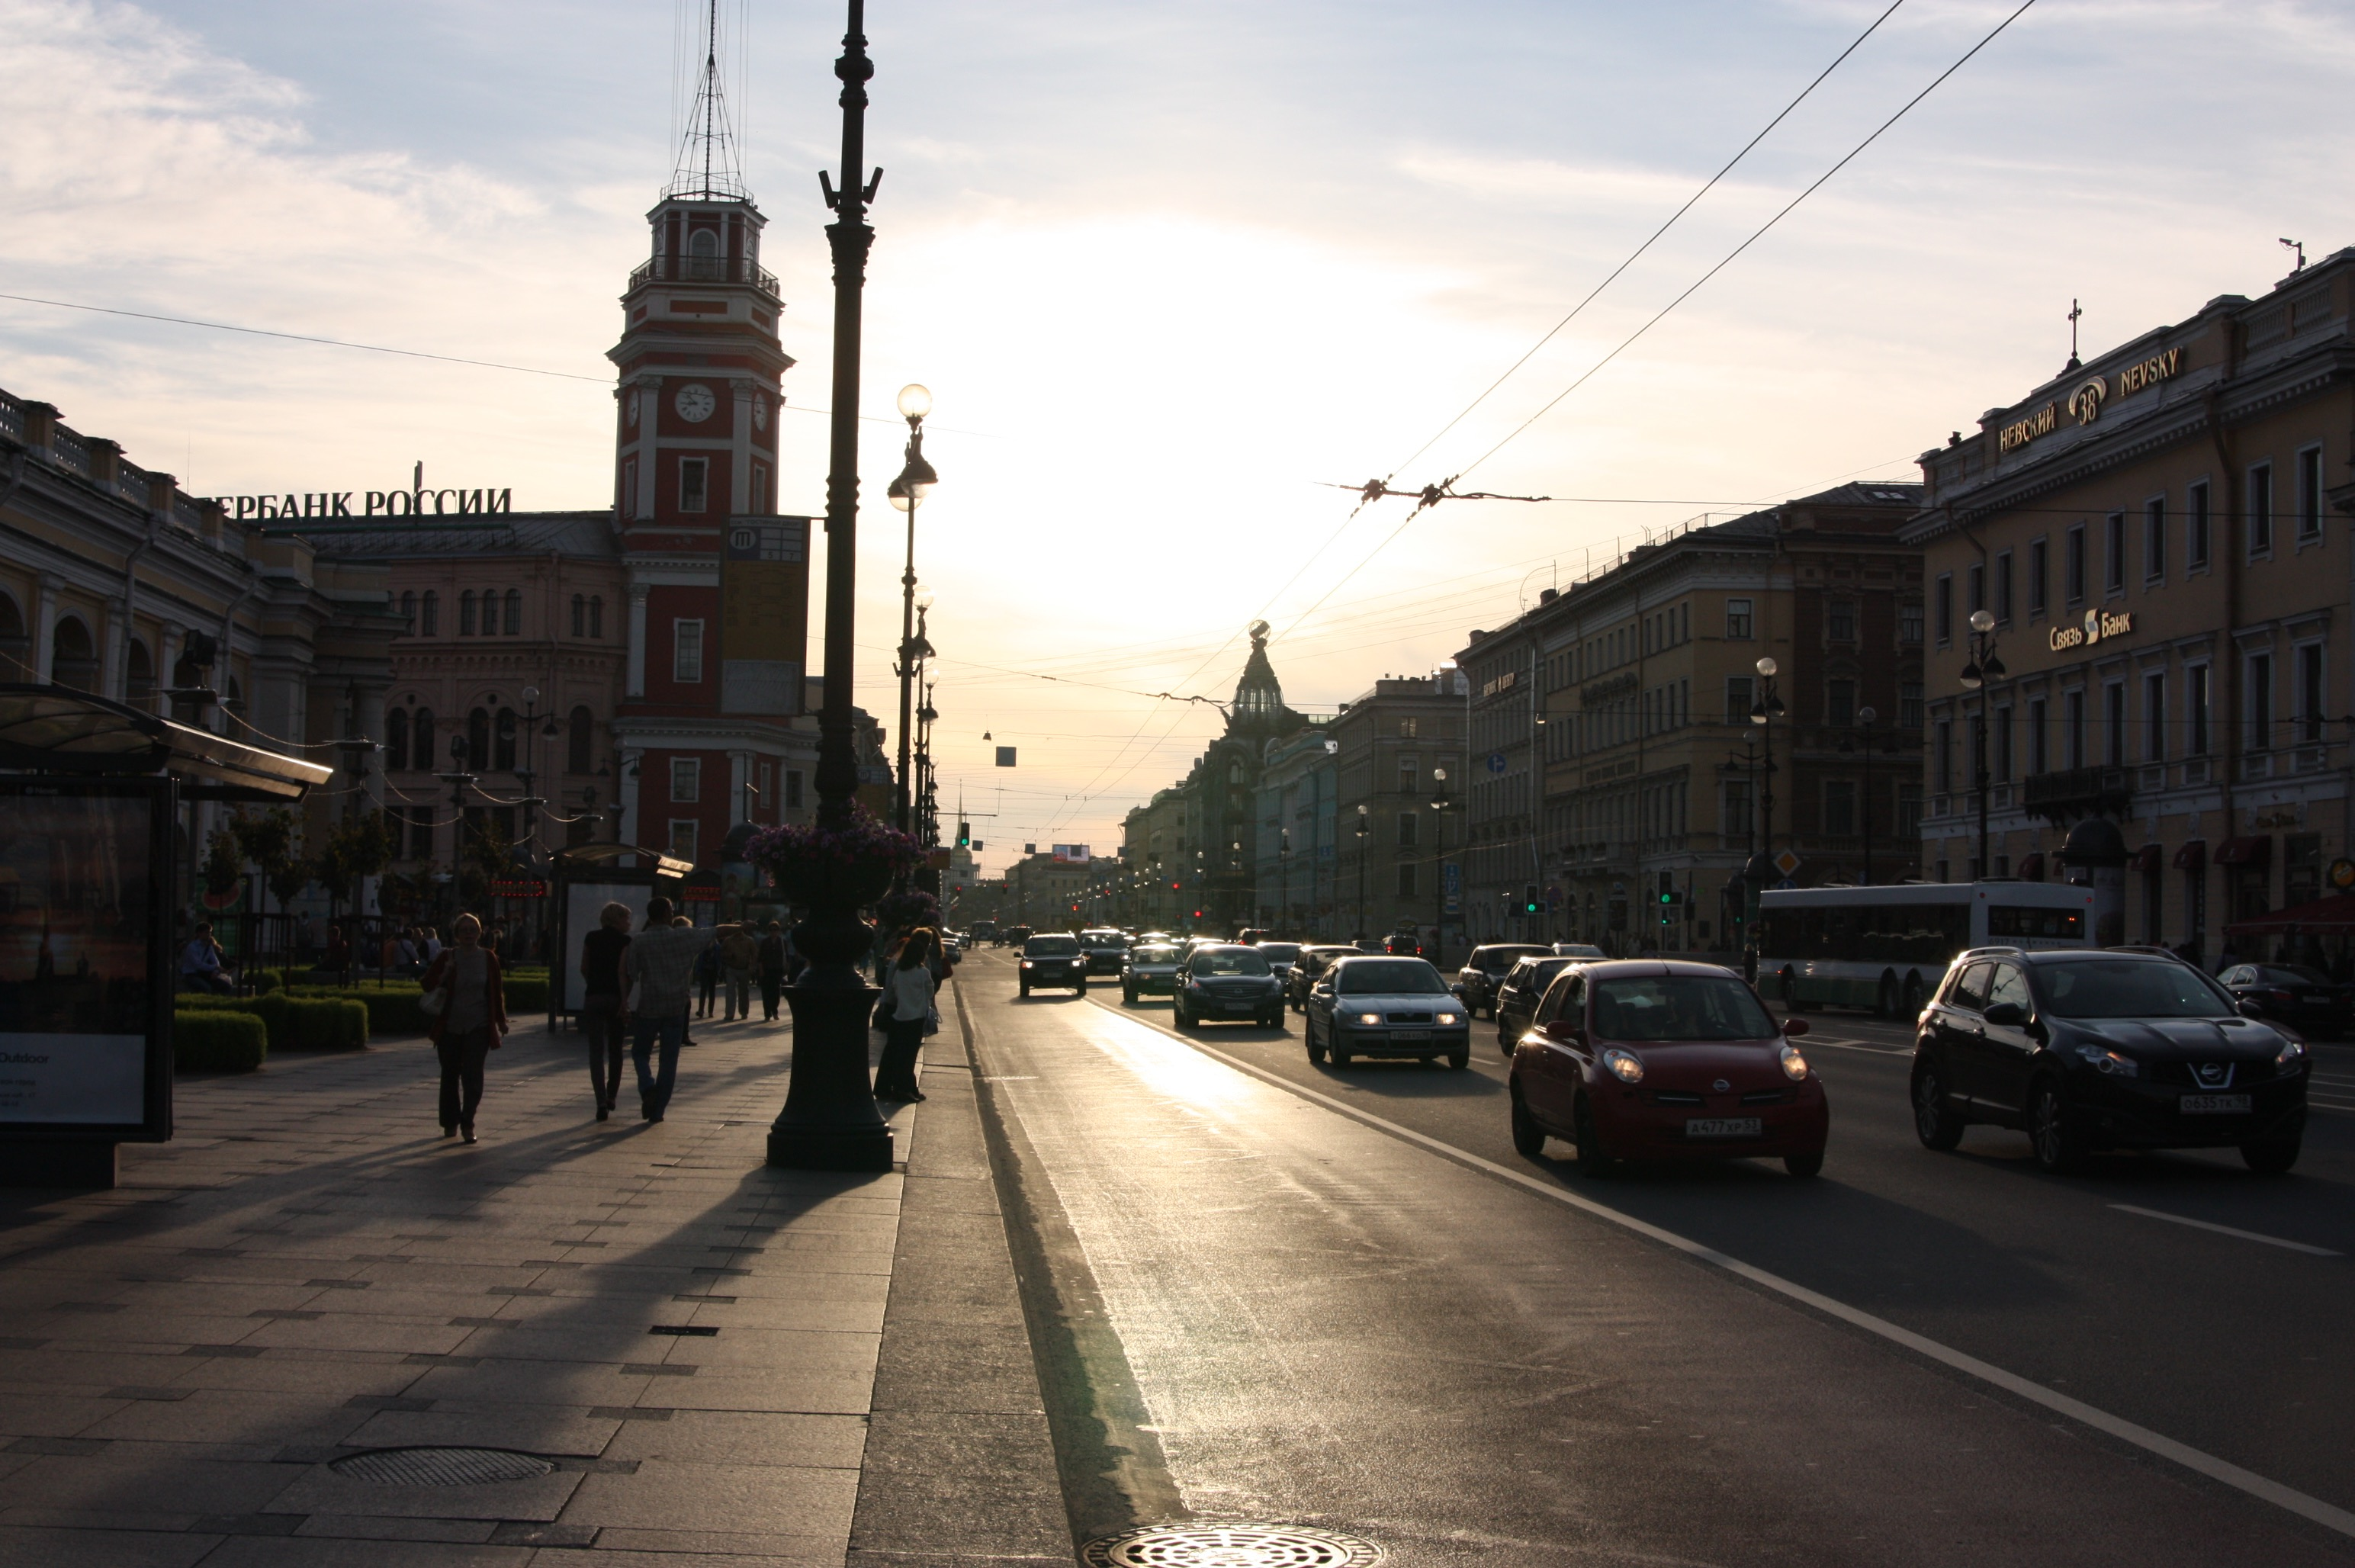 Sonnenuntergang in St. Petersburg.